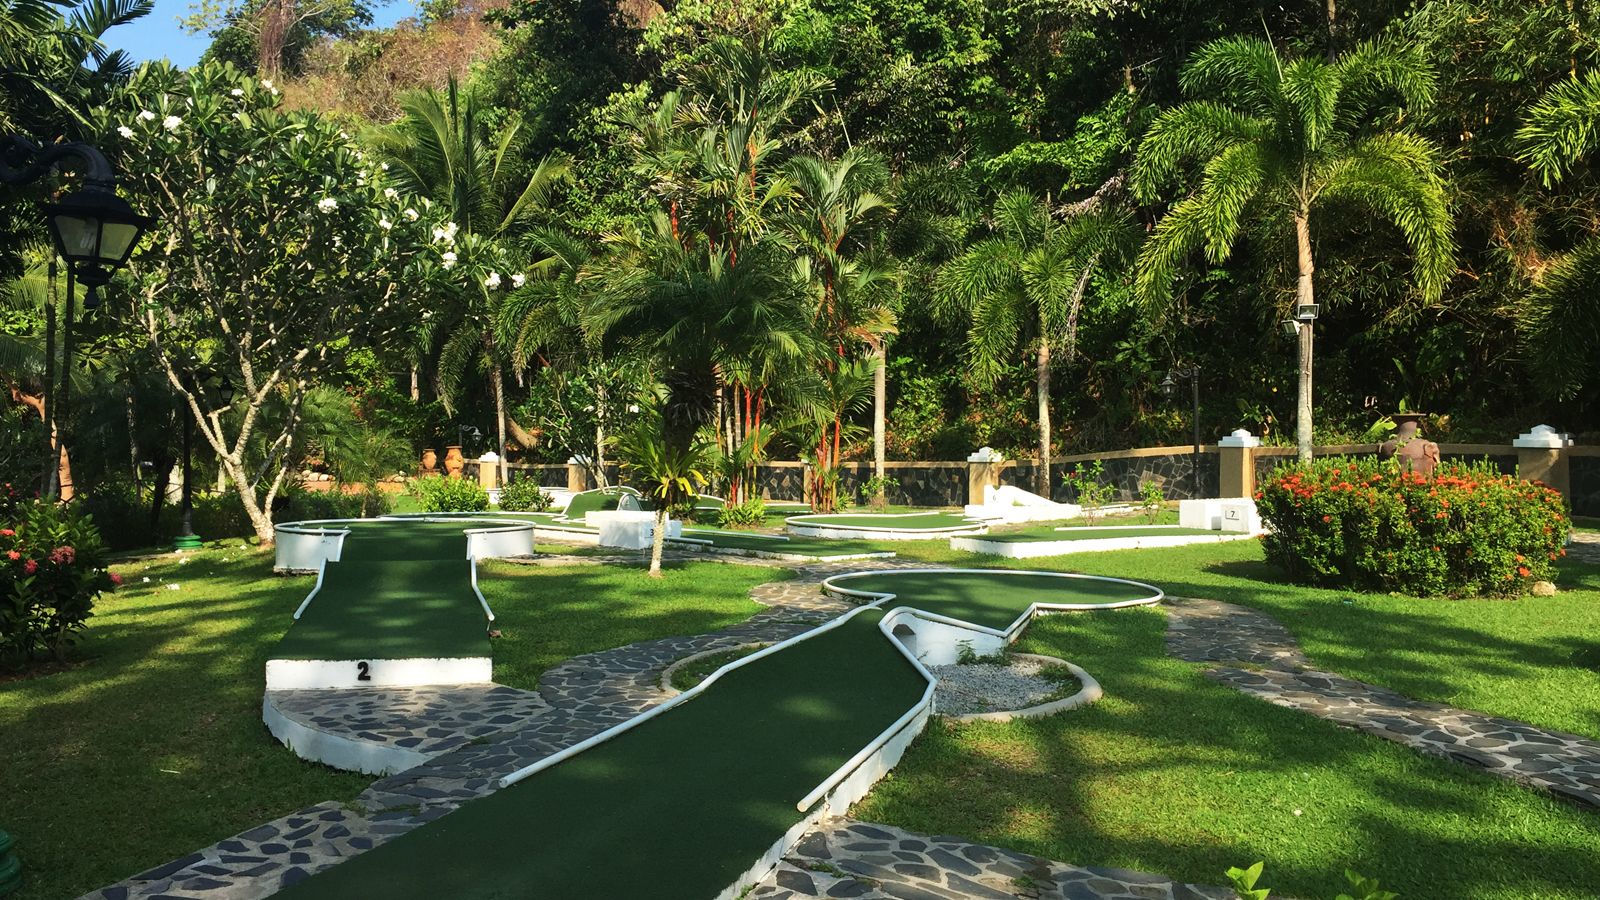 Family Fun - Nine-Hole Mini-Golf